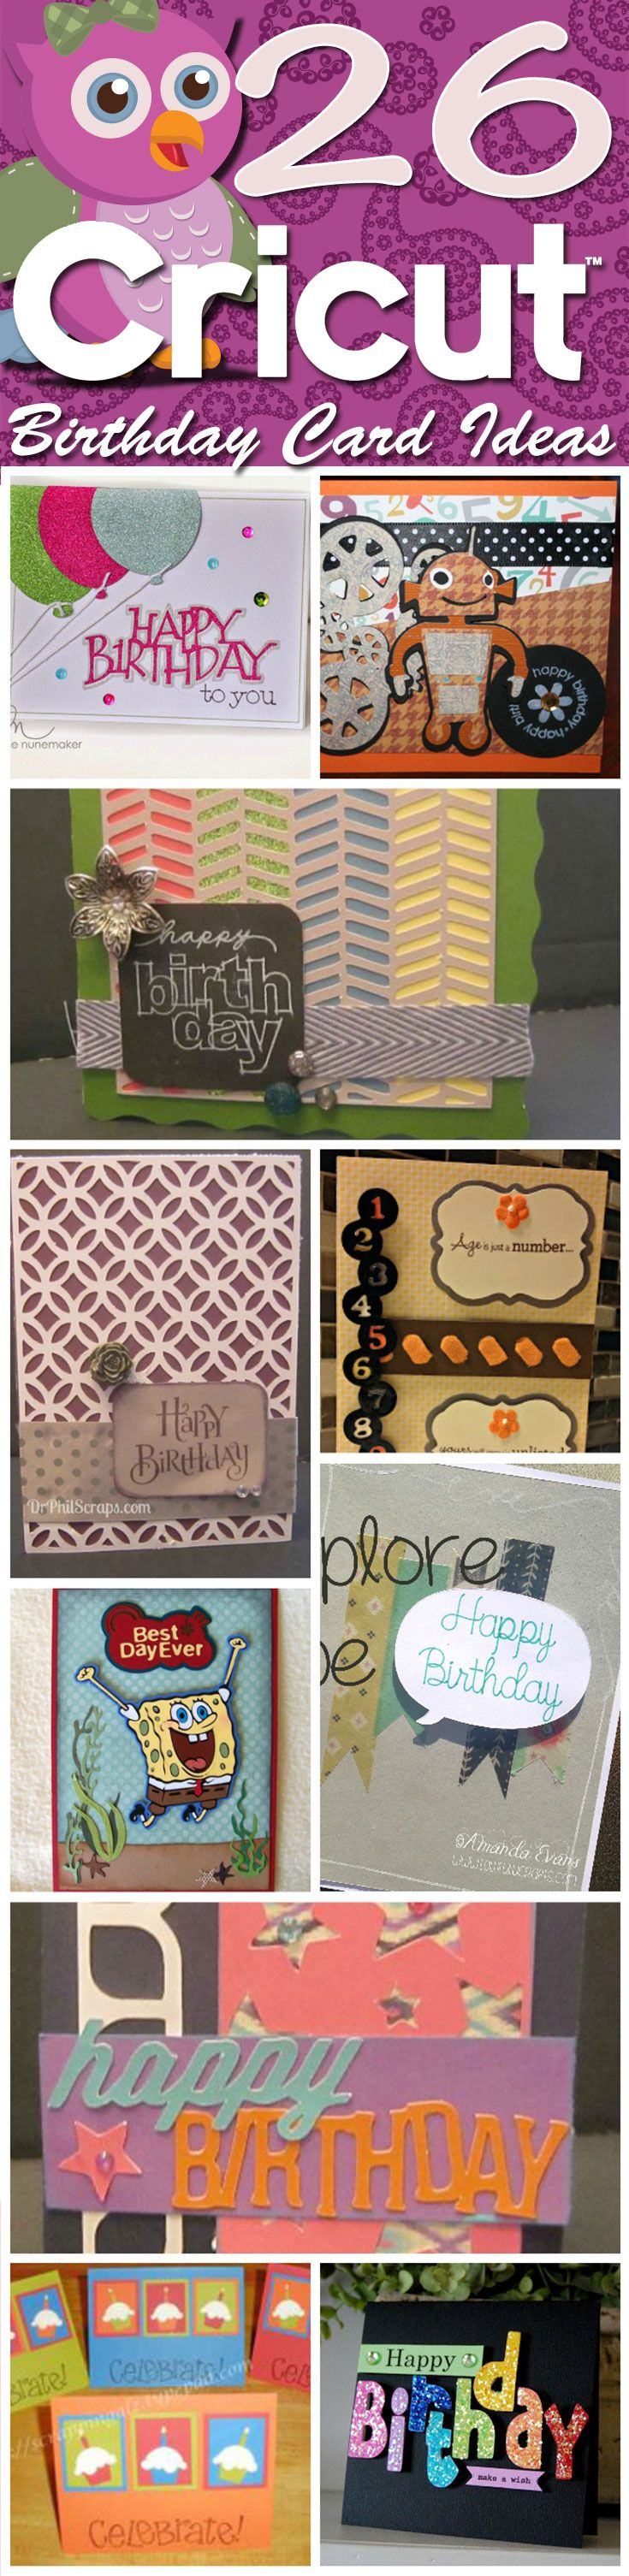 26 Cricut Birthday Card Ideas Cricut In 2018 Pinterest Cricut